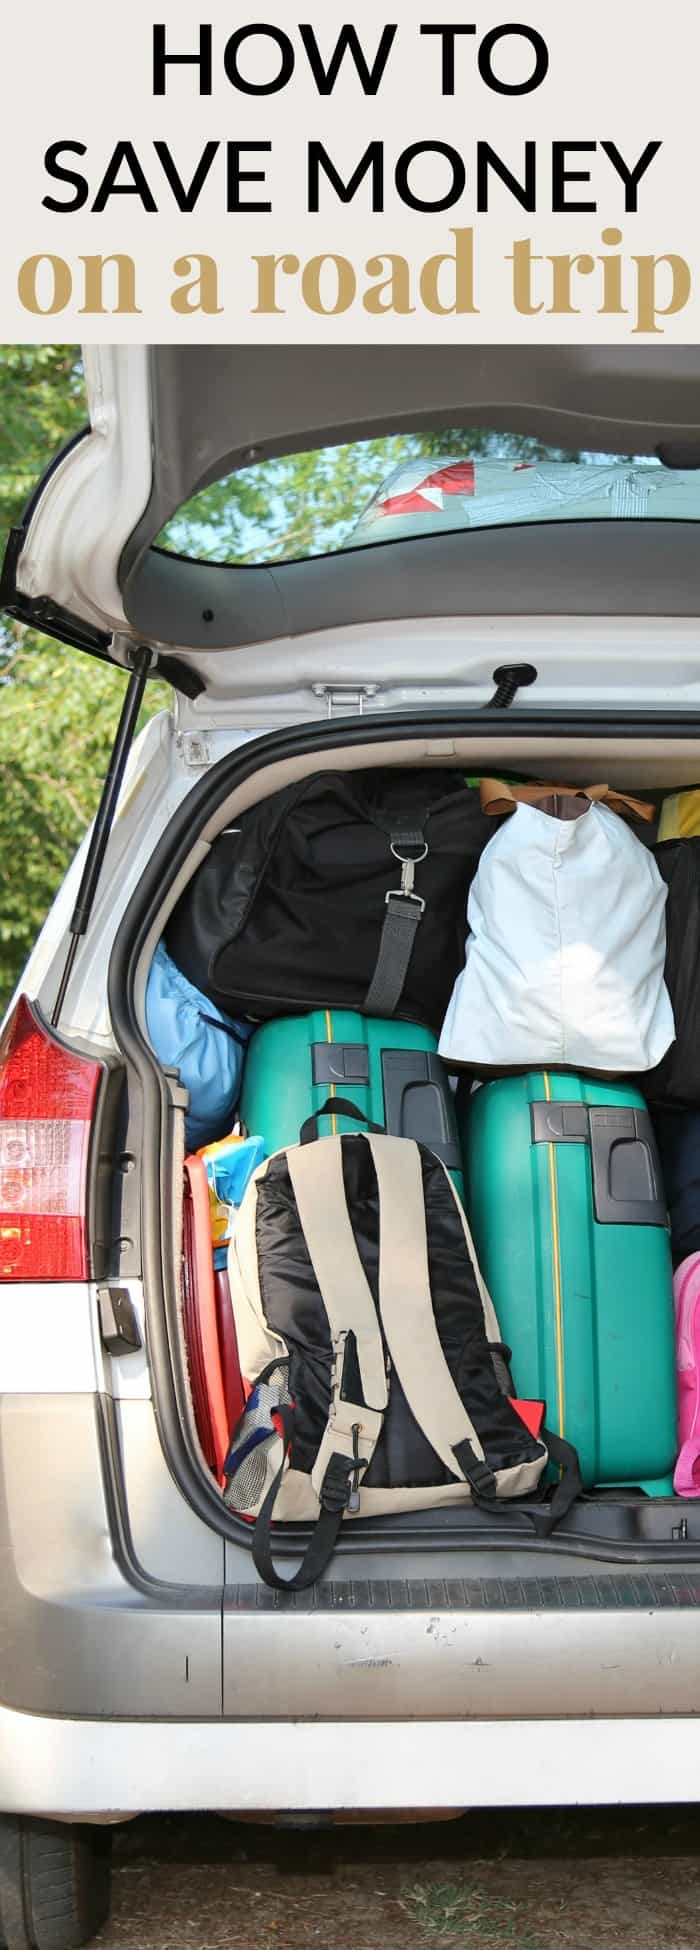 Tips to save money on your next family road trip